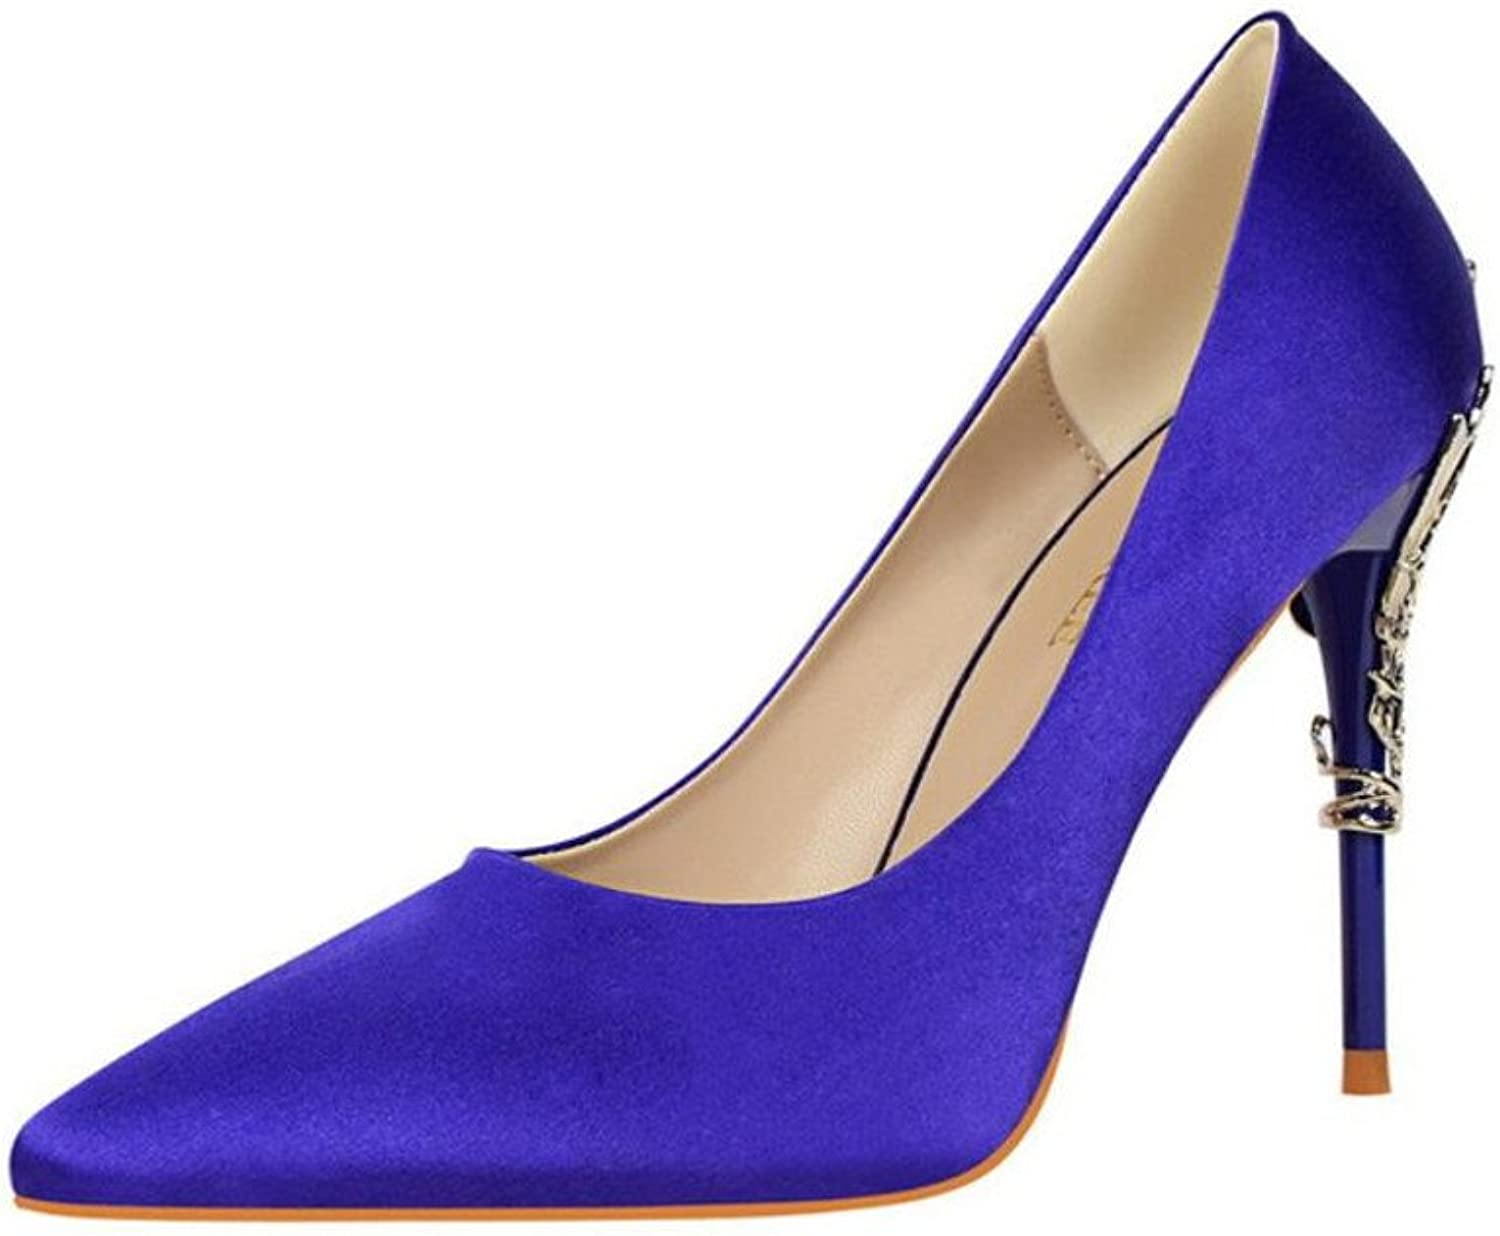 Pointed Toe Low Mid Kitten Heels Dress Court shoes Wedding Office shoes Satin Upper for Women Ladies Candy color Sandals,Purple,EU39